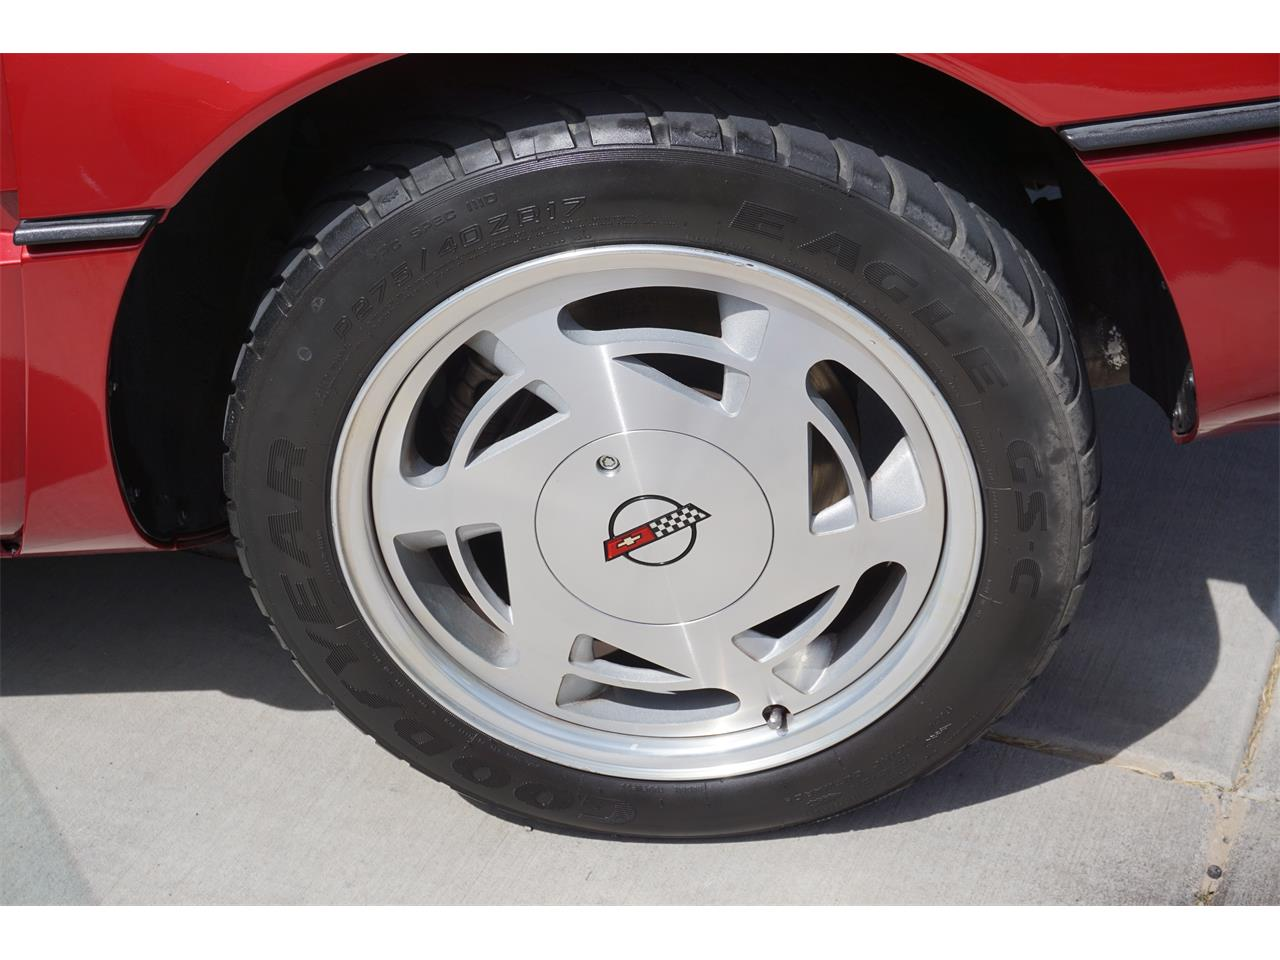 Large Picture of 1989 Corvette C4 located in Colorado Offered by a Private Seller - QTU6